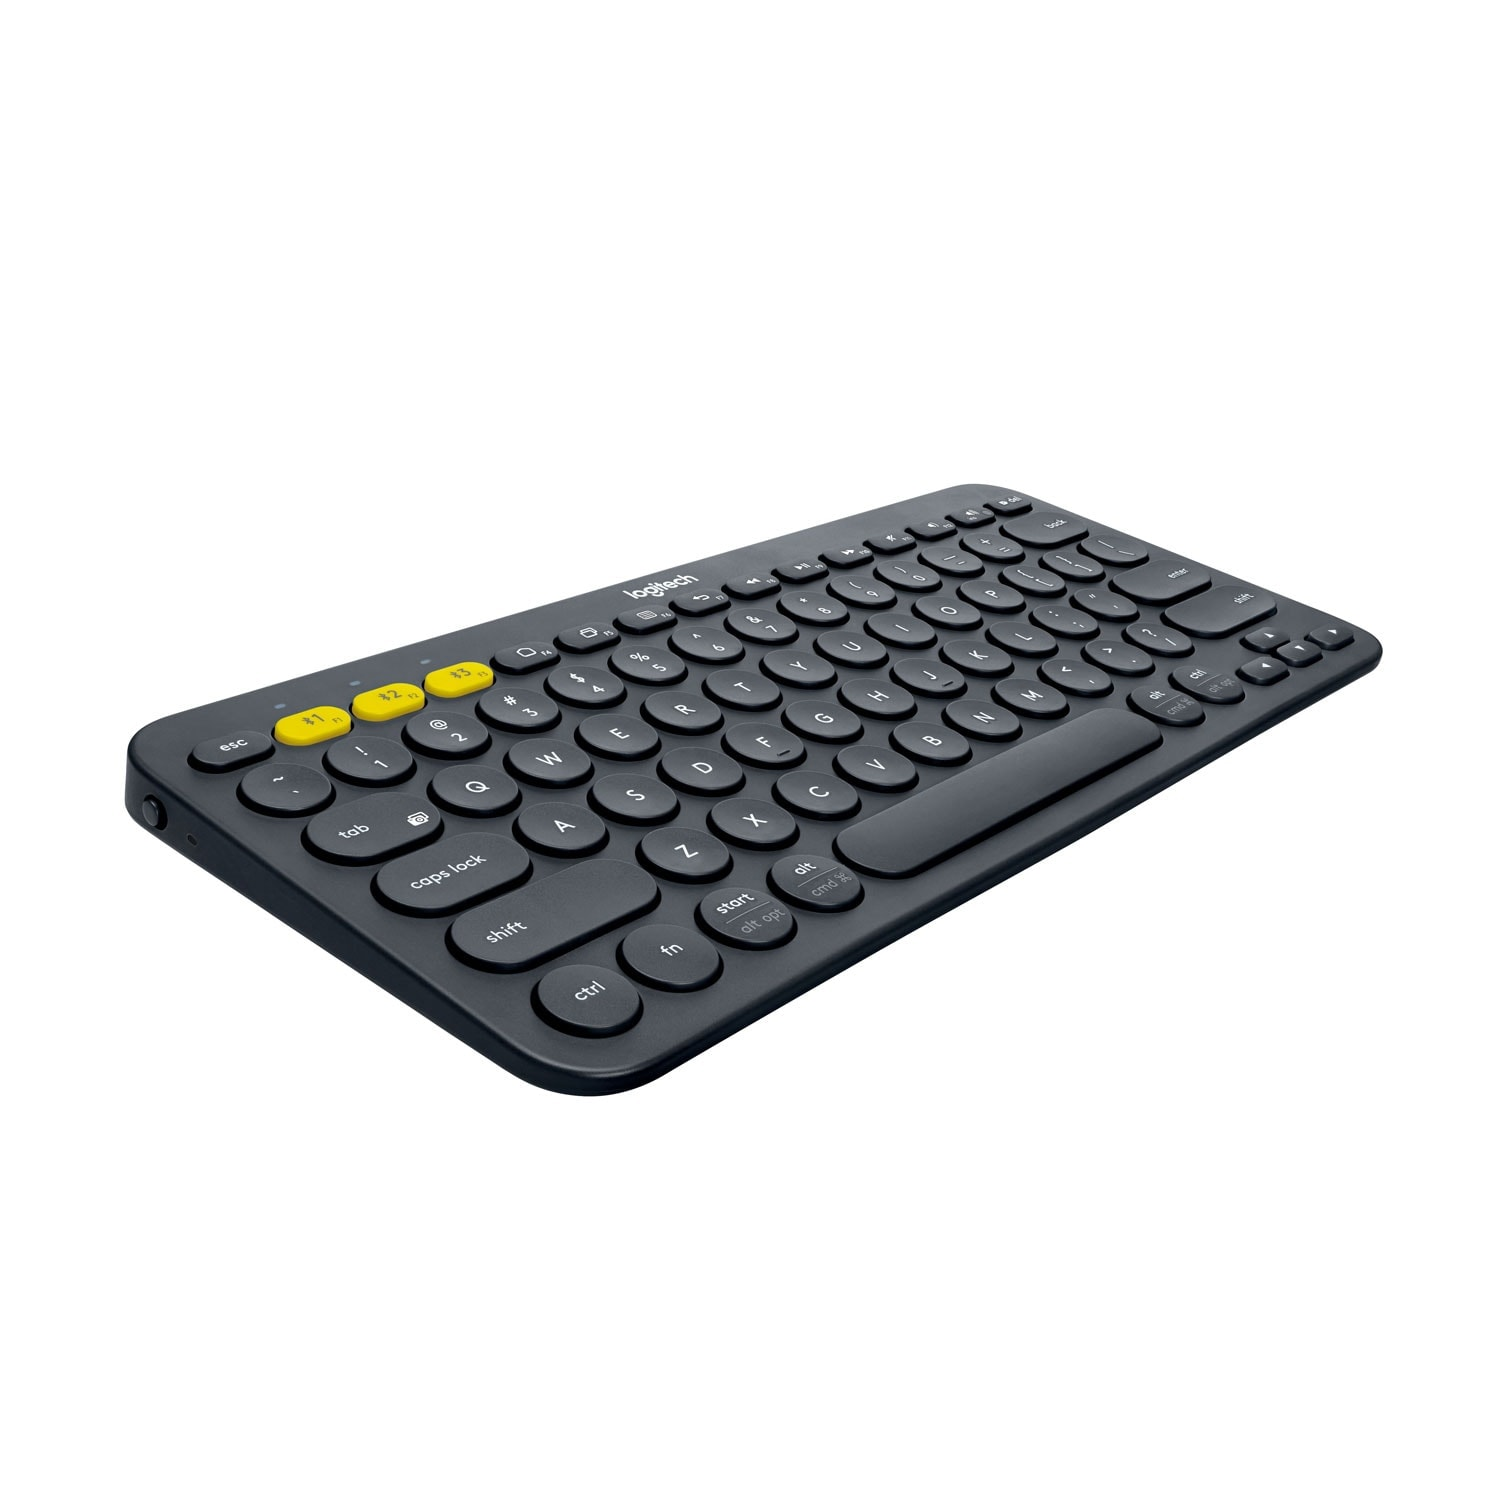 Logitech K380 Multi-Device Bluetooth Keyboard Noir - Clavier PC - 1